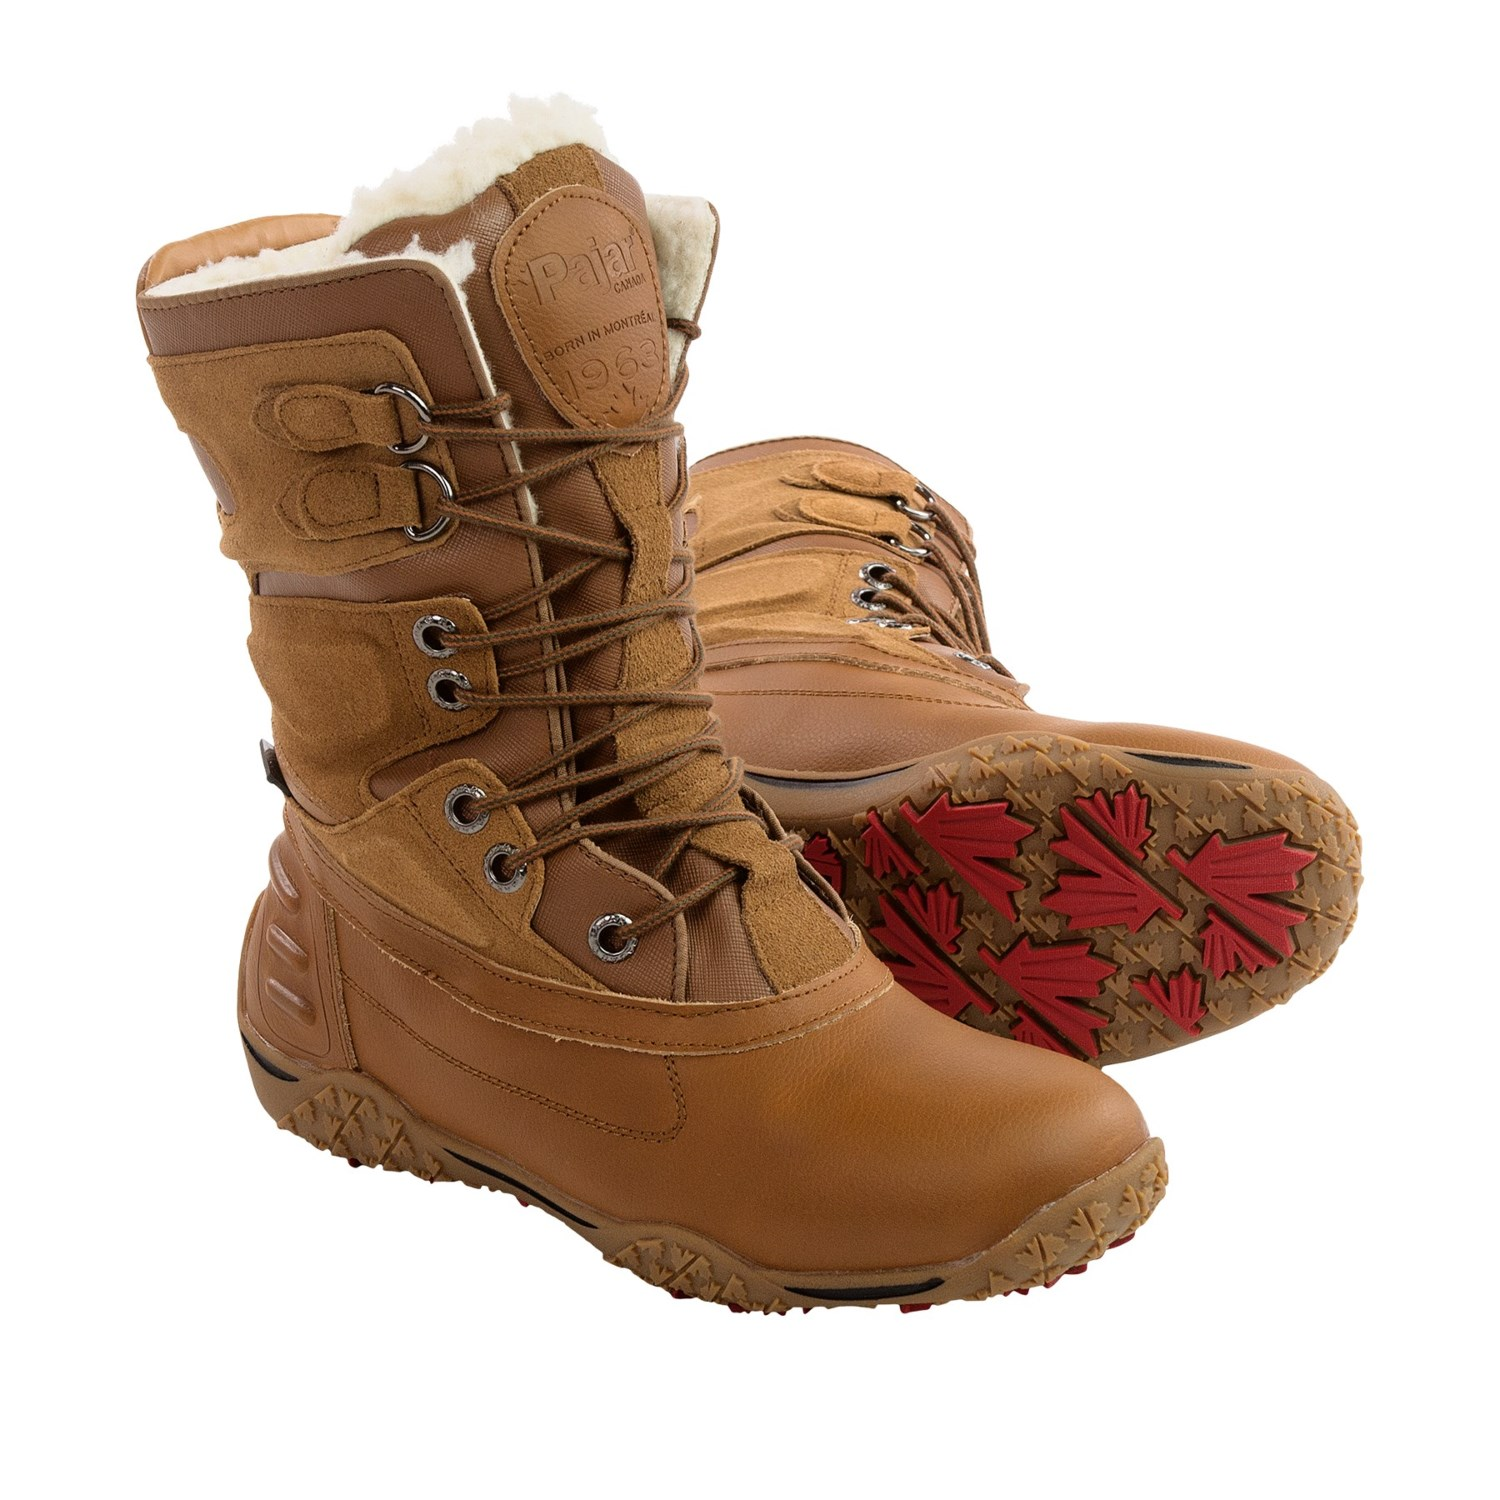 Leather Snow Boots - Yu Boots